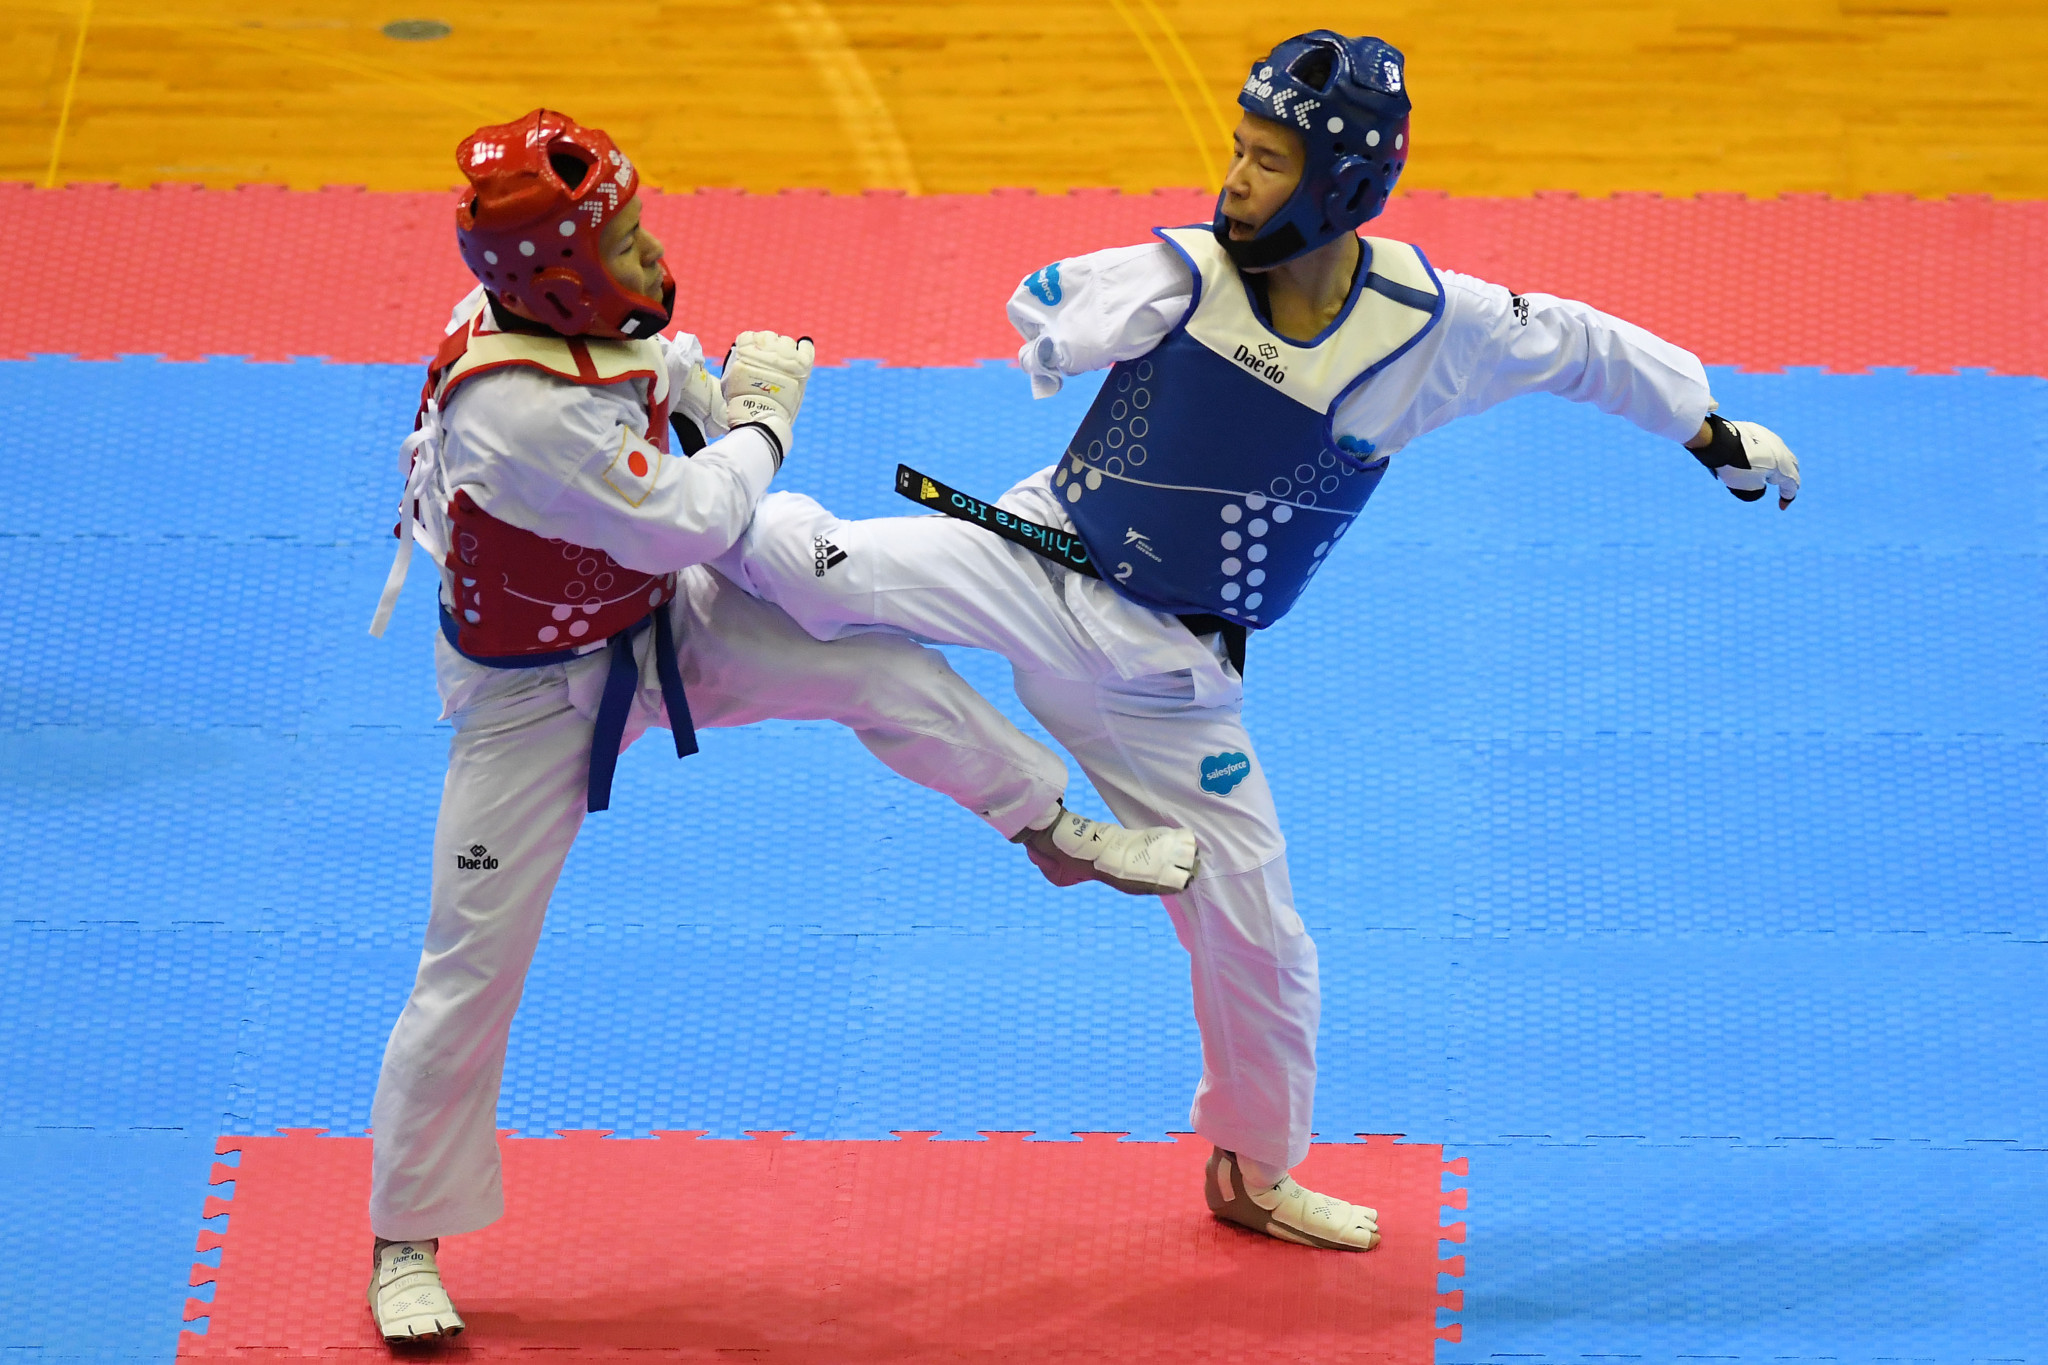 World Taekwondo believes Para-taekwondo has continued to go from strength to strength since it was created 15 years ago ©IPC